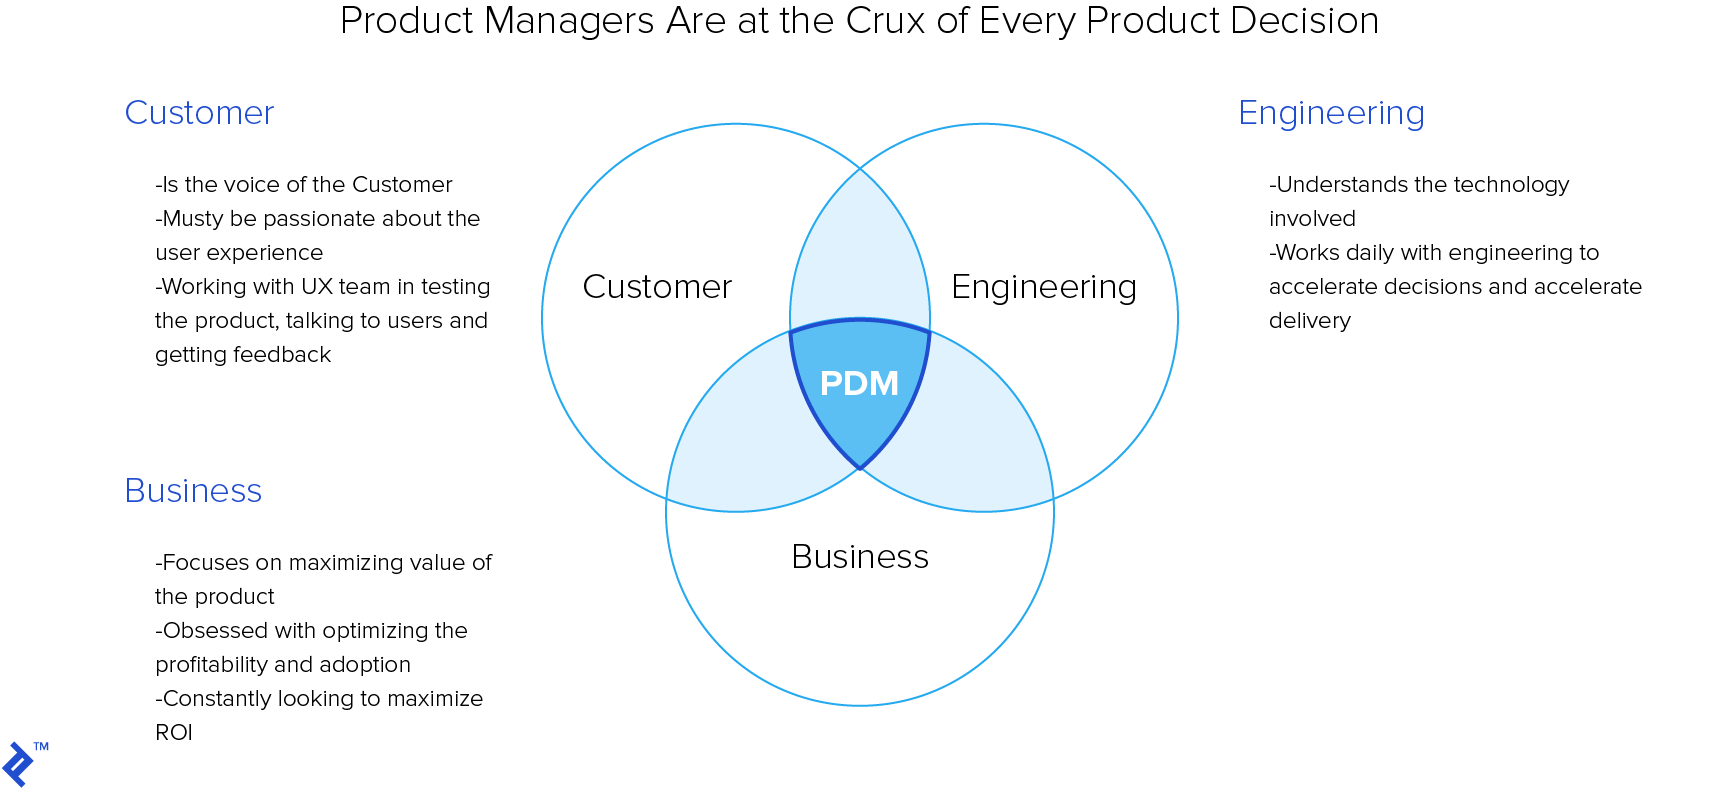 Product managers are at the crux of every product decision.